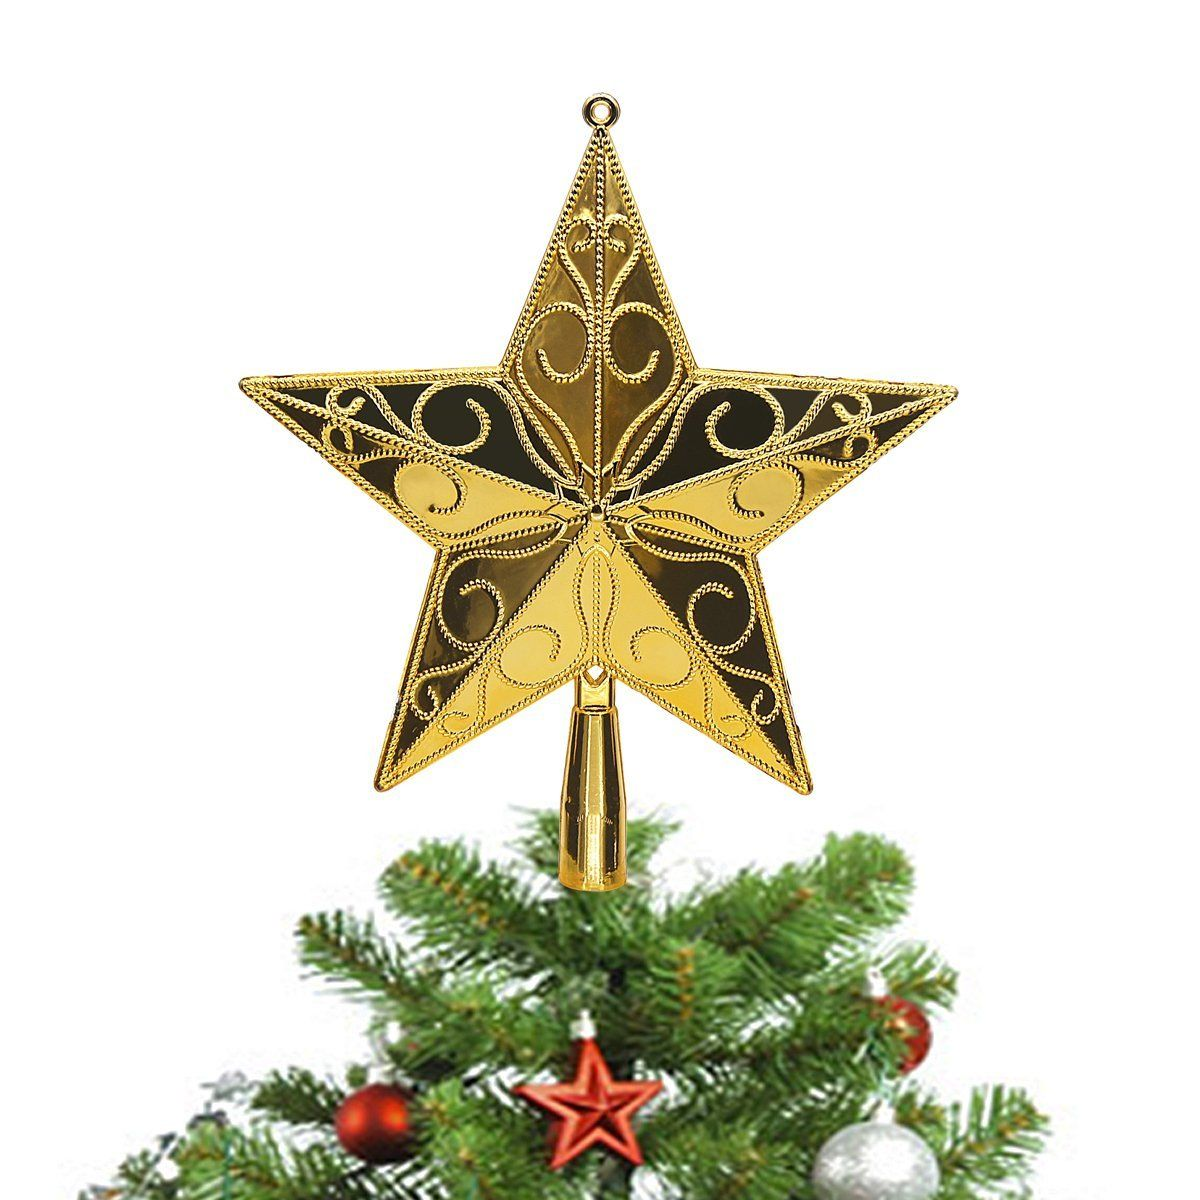 Amazon Com Limbridge Christmas Star Tree Topper 9 Inch Gold Treetop Home Kitchen Tree Toppers Star Tree Topper Christmas Star